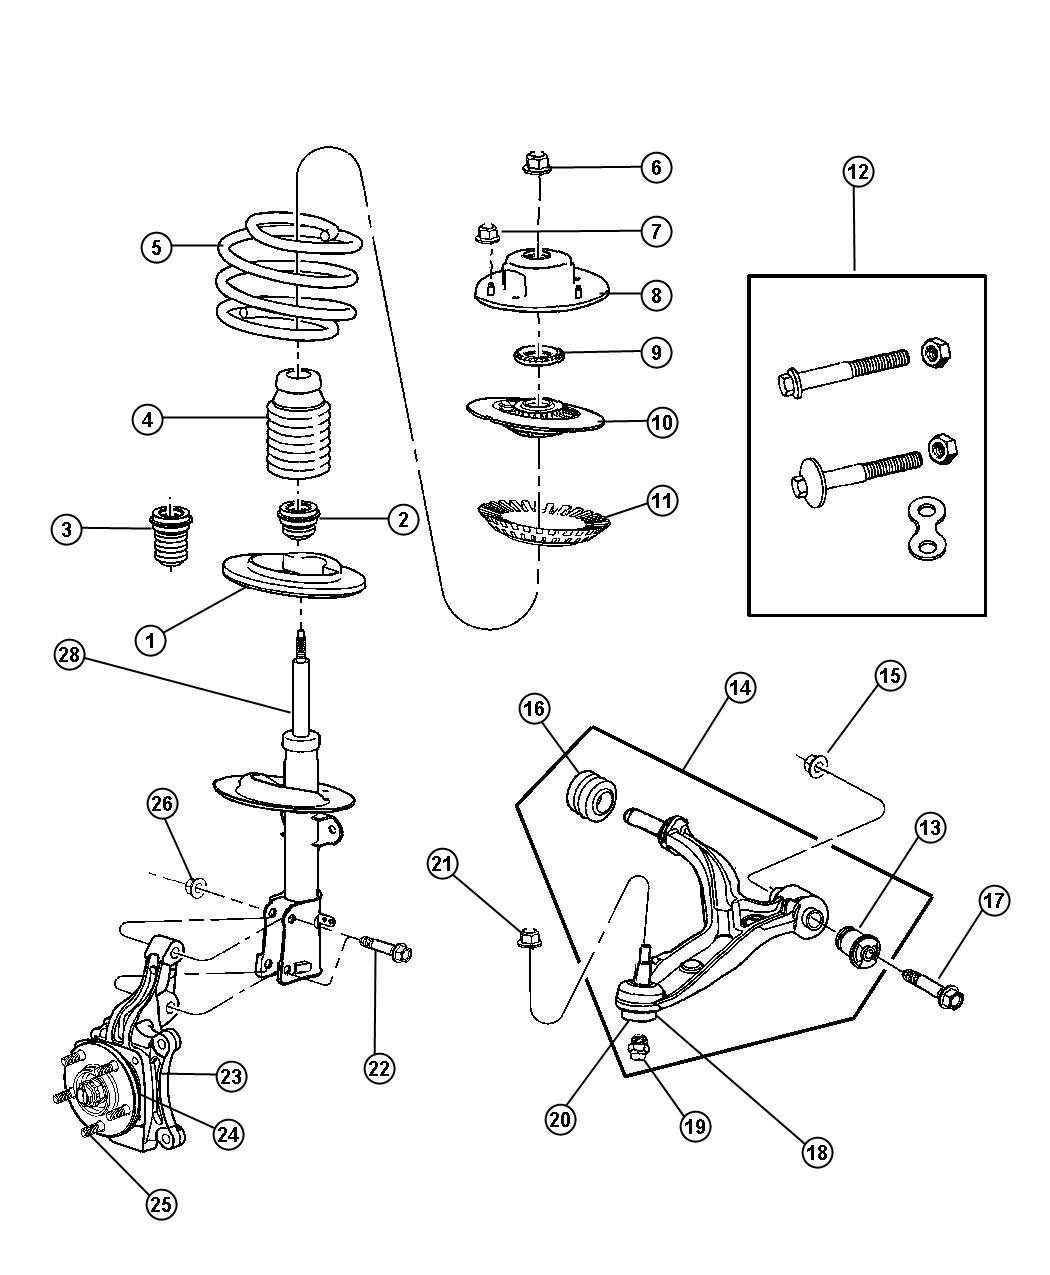 Chrysler Town Amp Country Used For Nut And Washer Hex